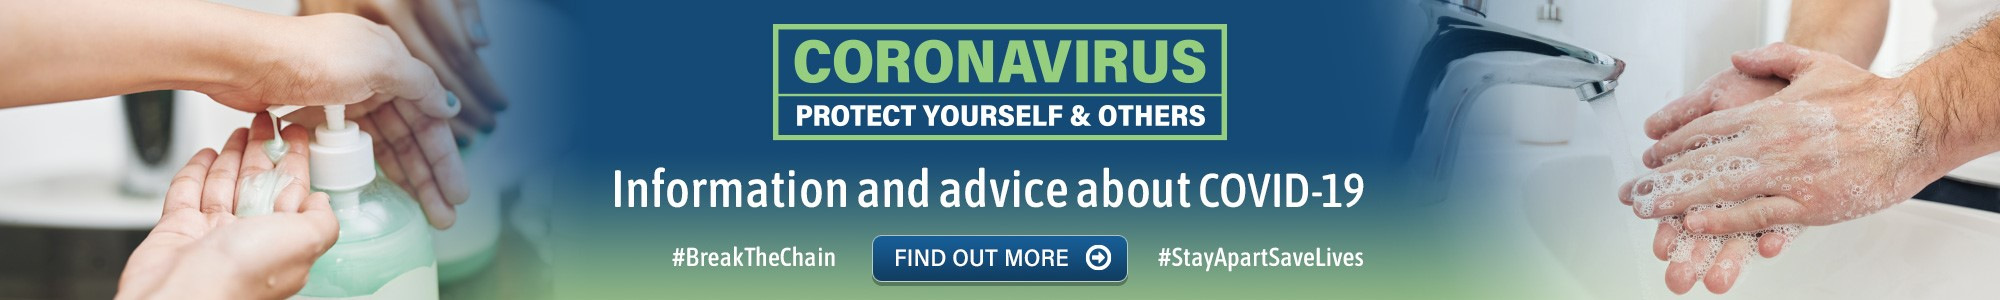 Coronavirus Information and advice about COVID-19